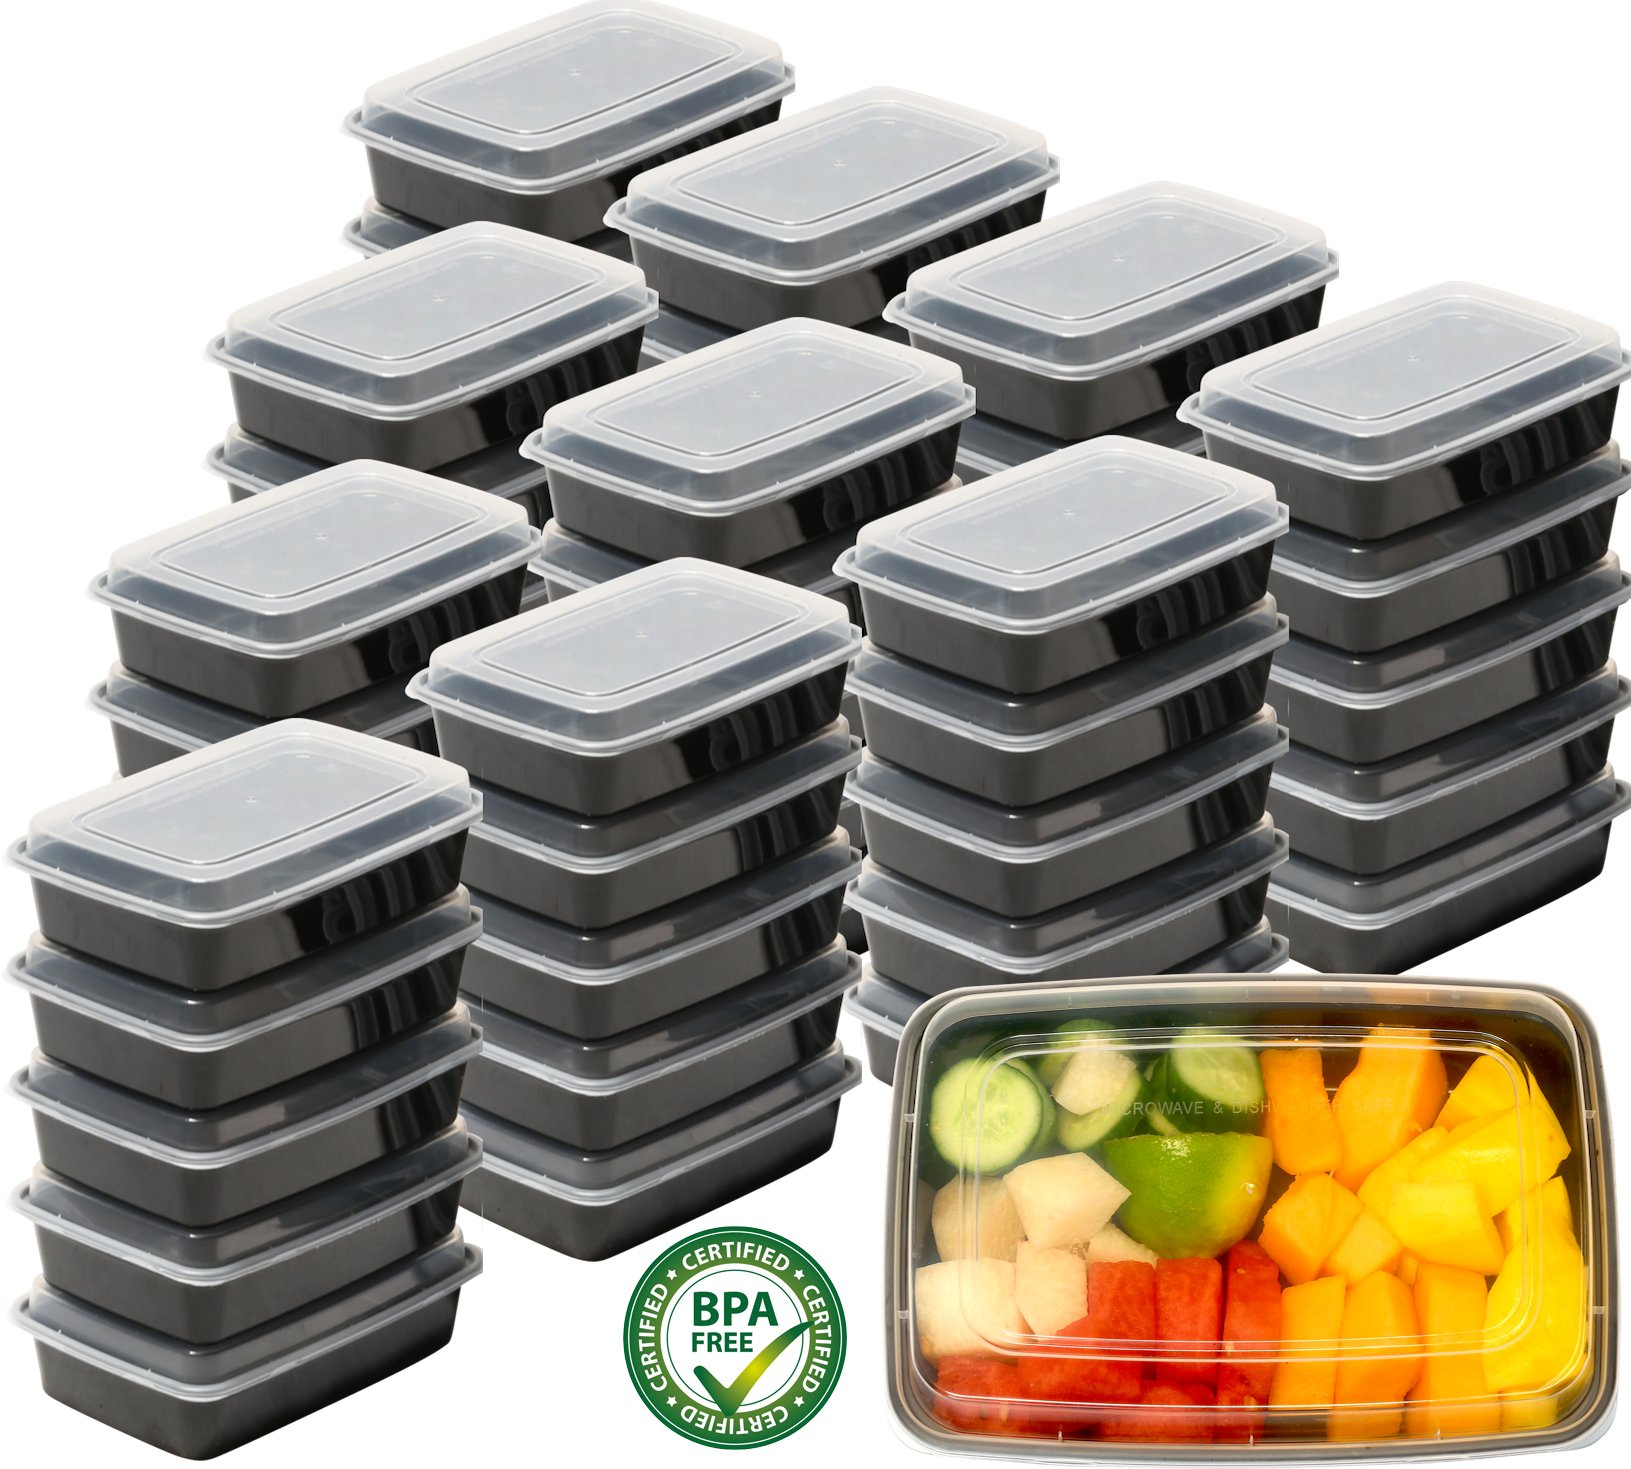 50 Pack - SimpleHouseware 1 Compartment Reusable Food Grade Meal Prep Storage Container Lunch Boxes, 28 Ounces